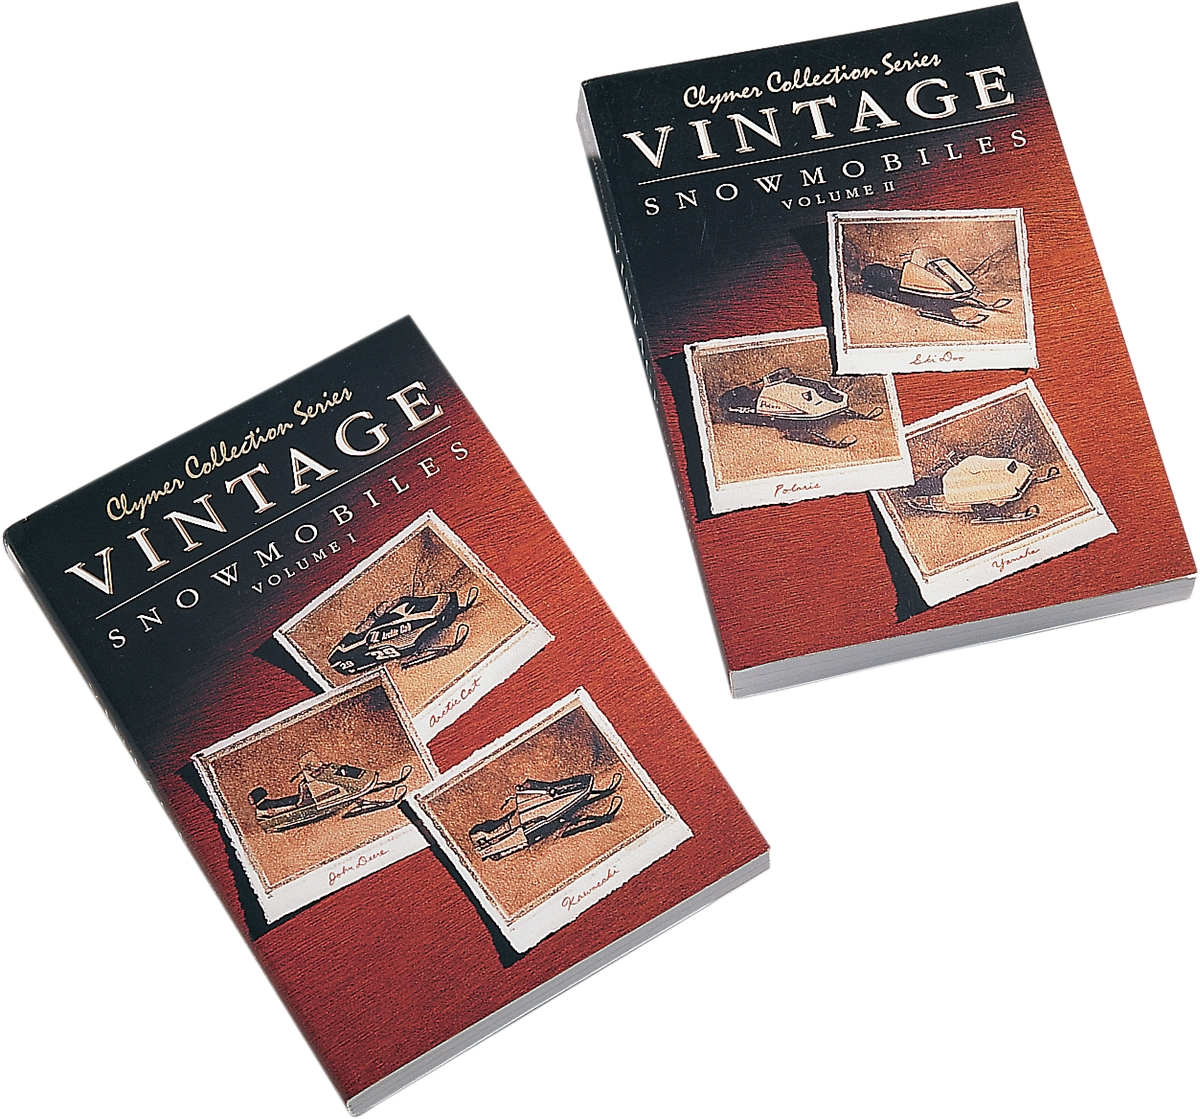 New Clymer S820 Collection Series Vintage Snowmobile Manual Ebay 1998 Arctic Cat Jag 440 Wiring Diagram